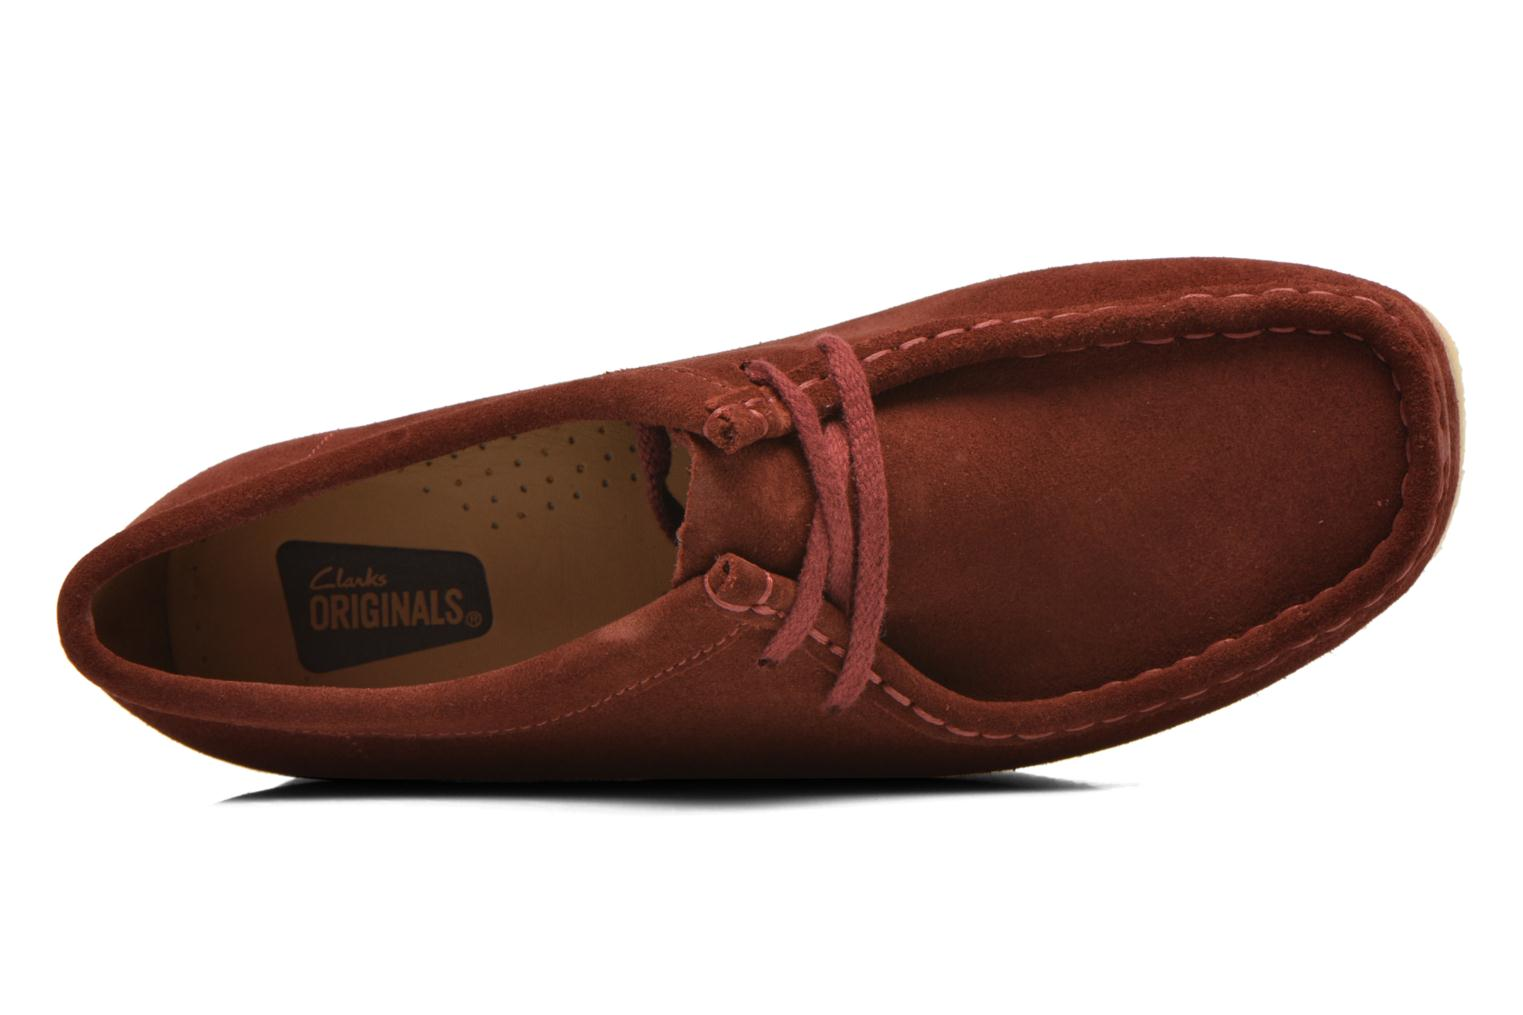 Wallabee W Nut Brown Suede